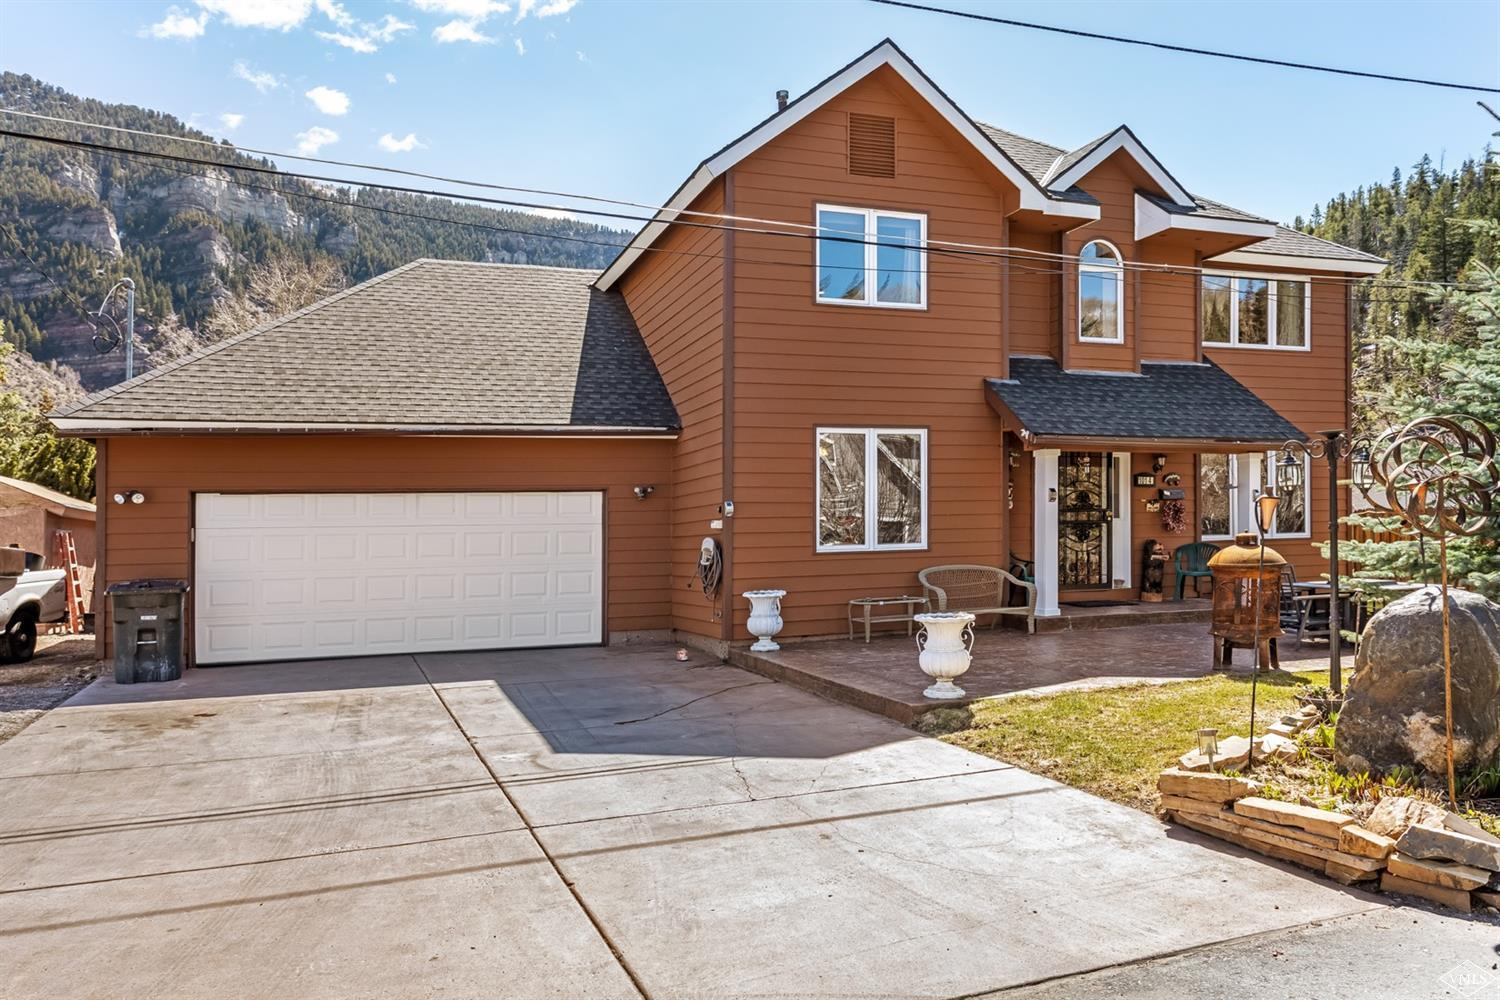 Imagine your own high country getaway, surrounded by majestic mountains, hiking, biking, fishing, kayaking and Minturn's historic old town charm. This is an incredible opportunity to own a home that is only minutes from the Ski & Snowboard Academy, Vail & Beaver Creek ski resorts and Minturn Fitness Center. Welcome to Minturn and welcome home!